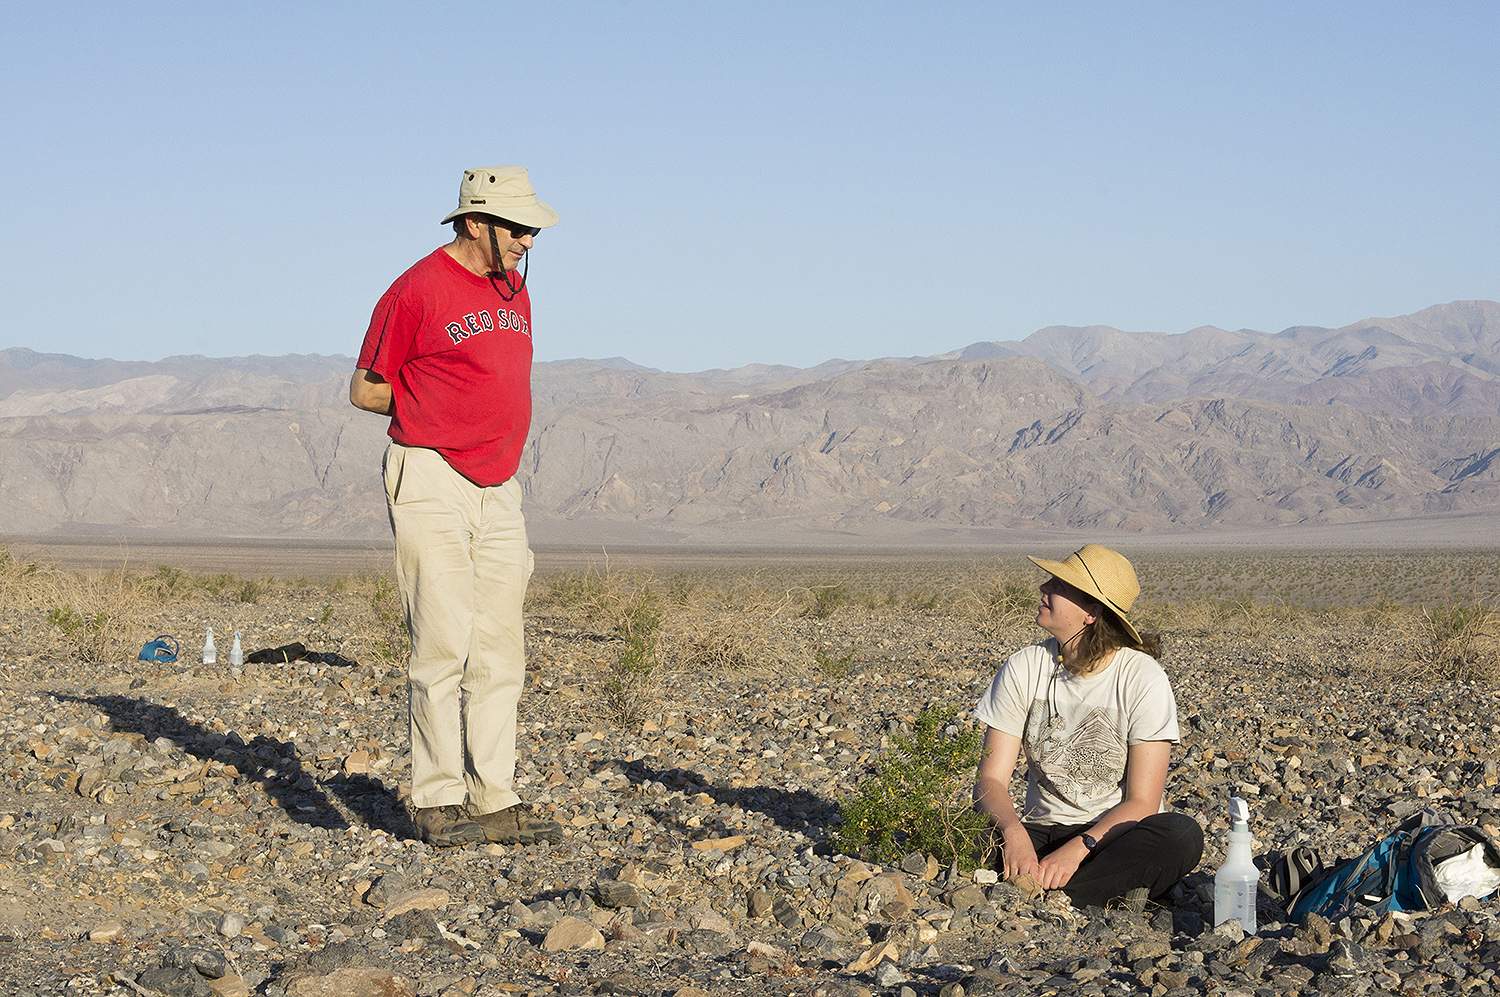 The team attempted to sample creosote roots from below sea level to about 5,000 feet, however the soil at low elevations was too dry.